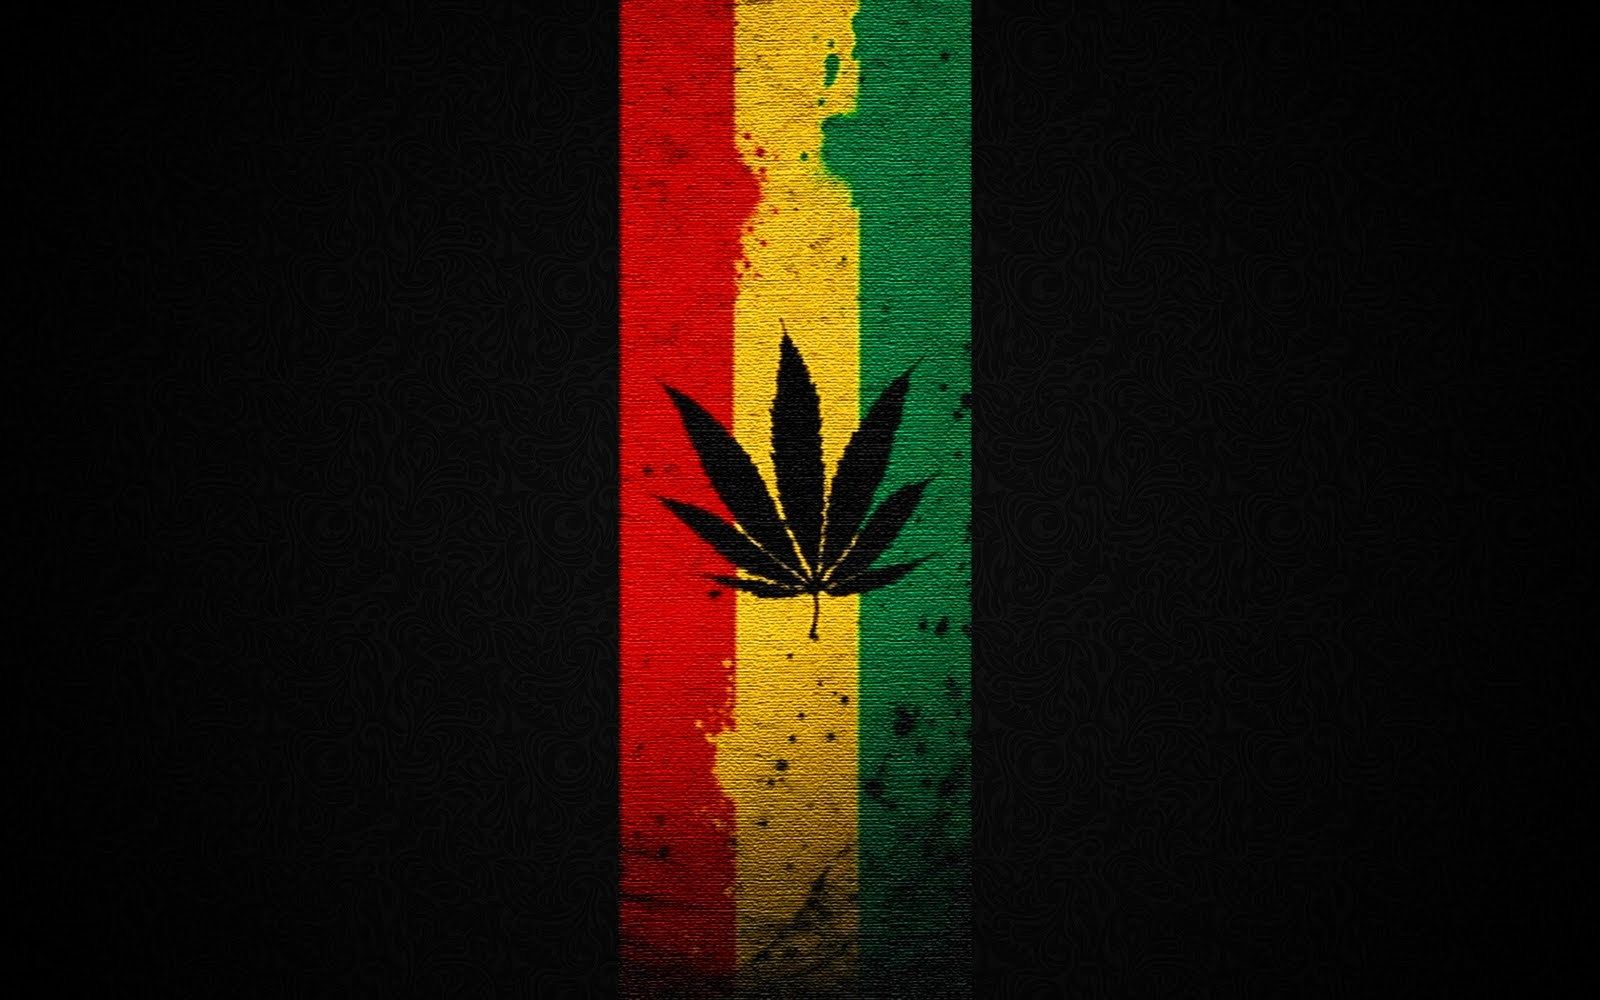 free weed wallpapers for ipod touch » Wallppapers Gallery Free